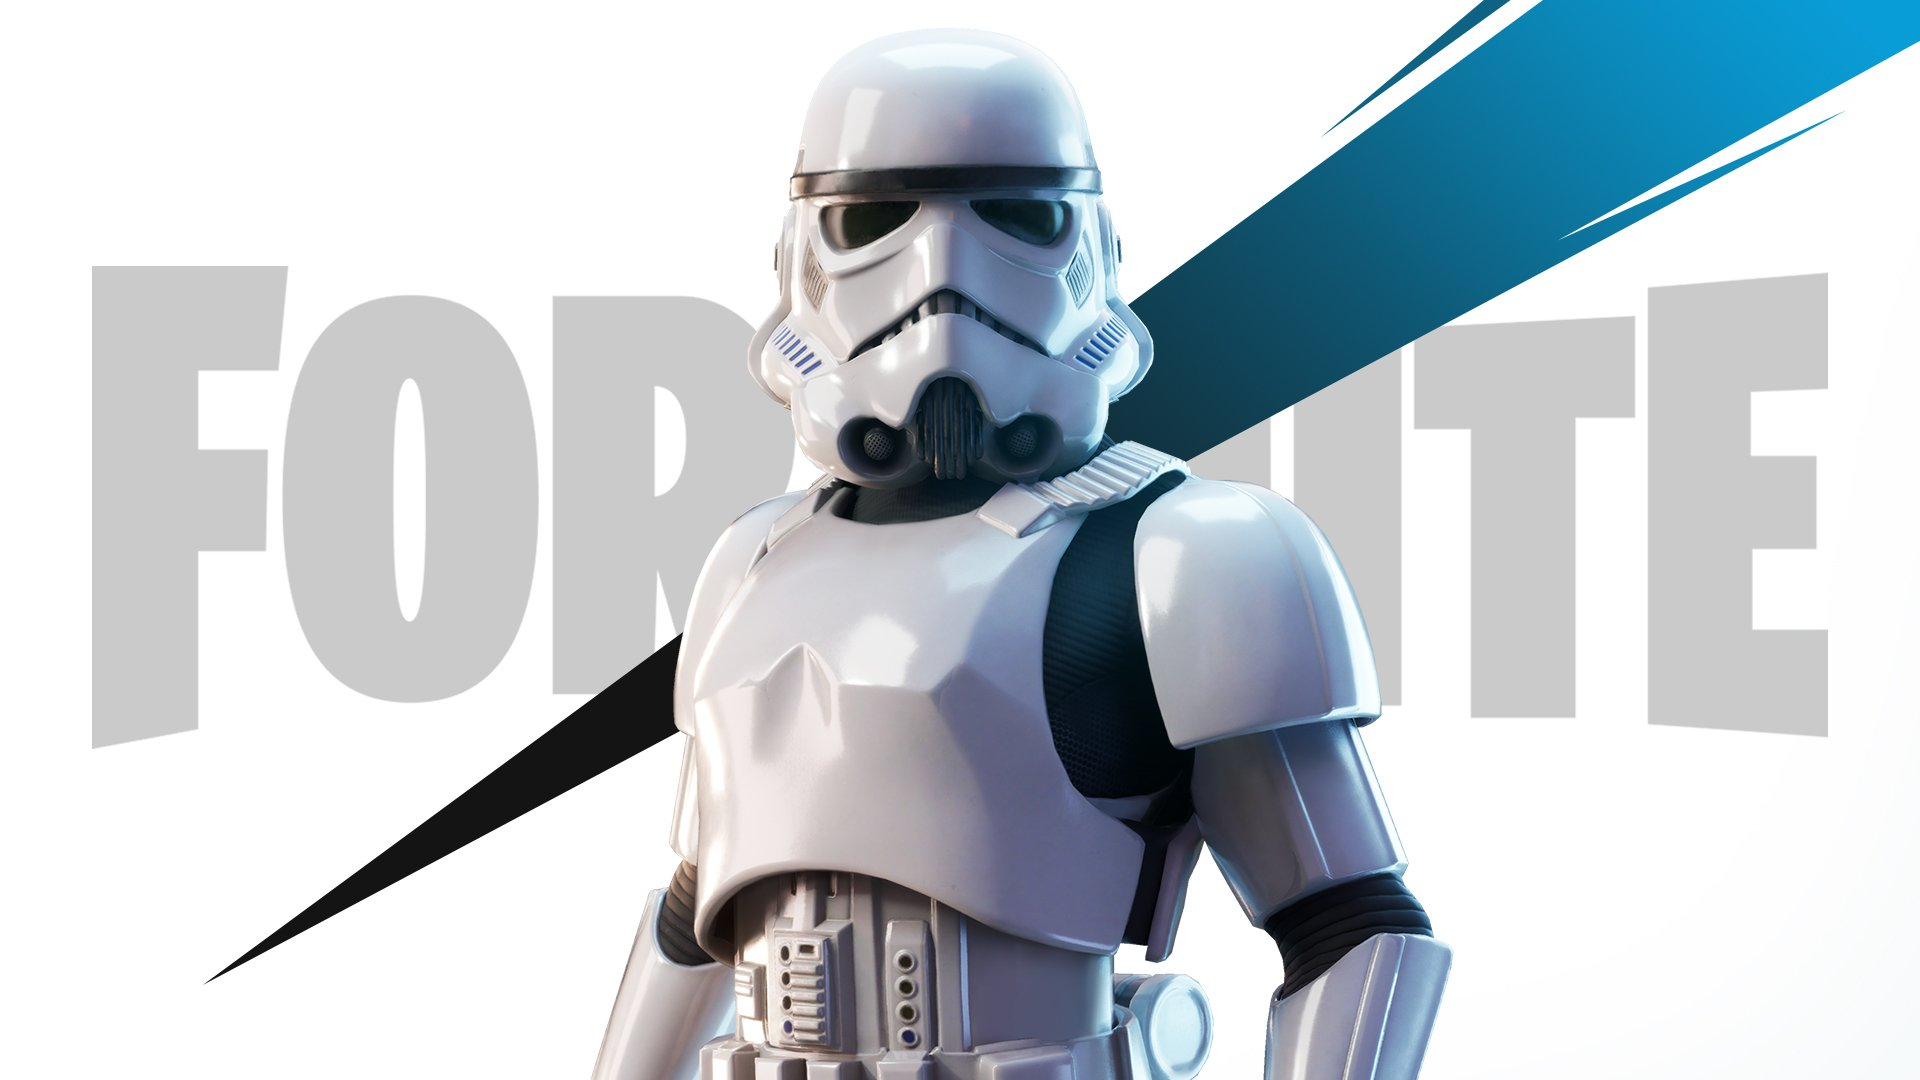 Fortnite Star Wars Challenges First Order Stormtrooper Imperial Stormtrooper Outfit Fortnite Wiki